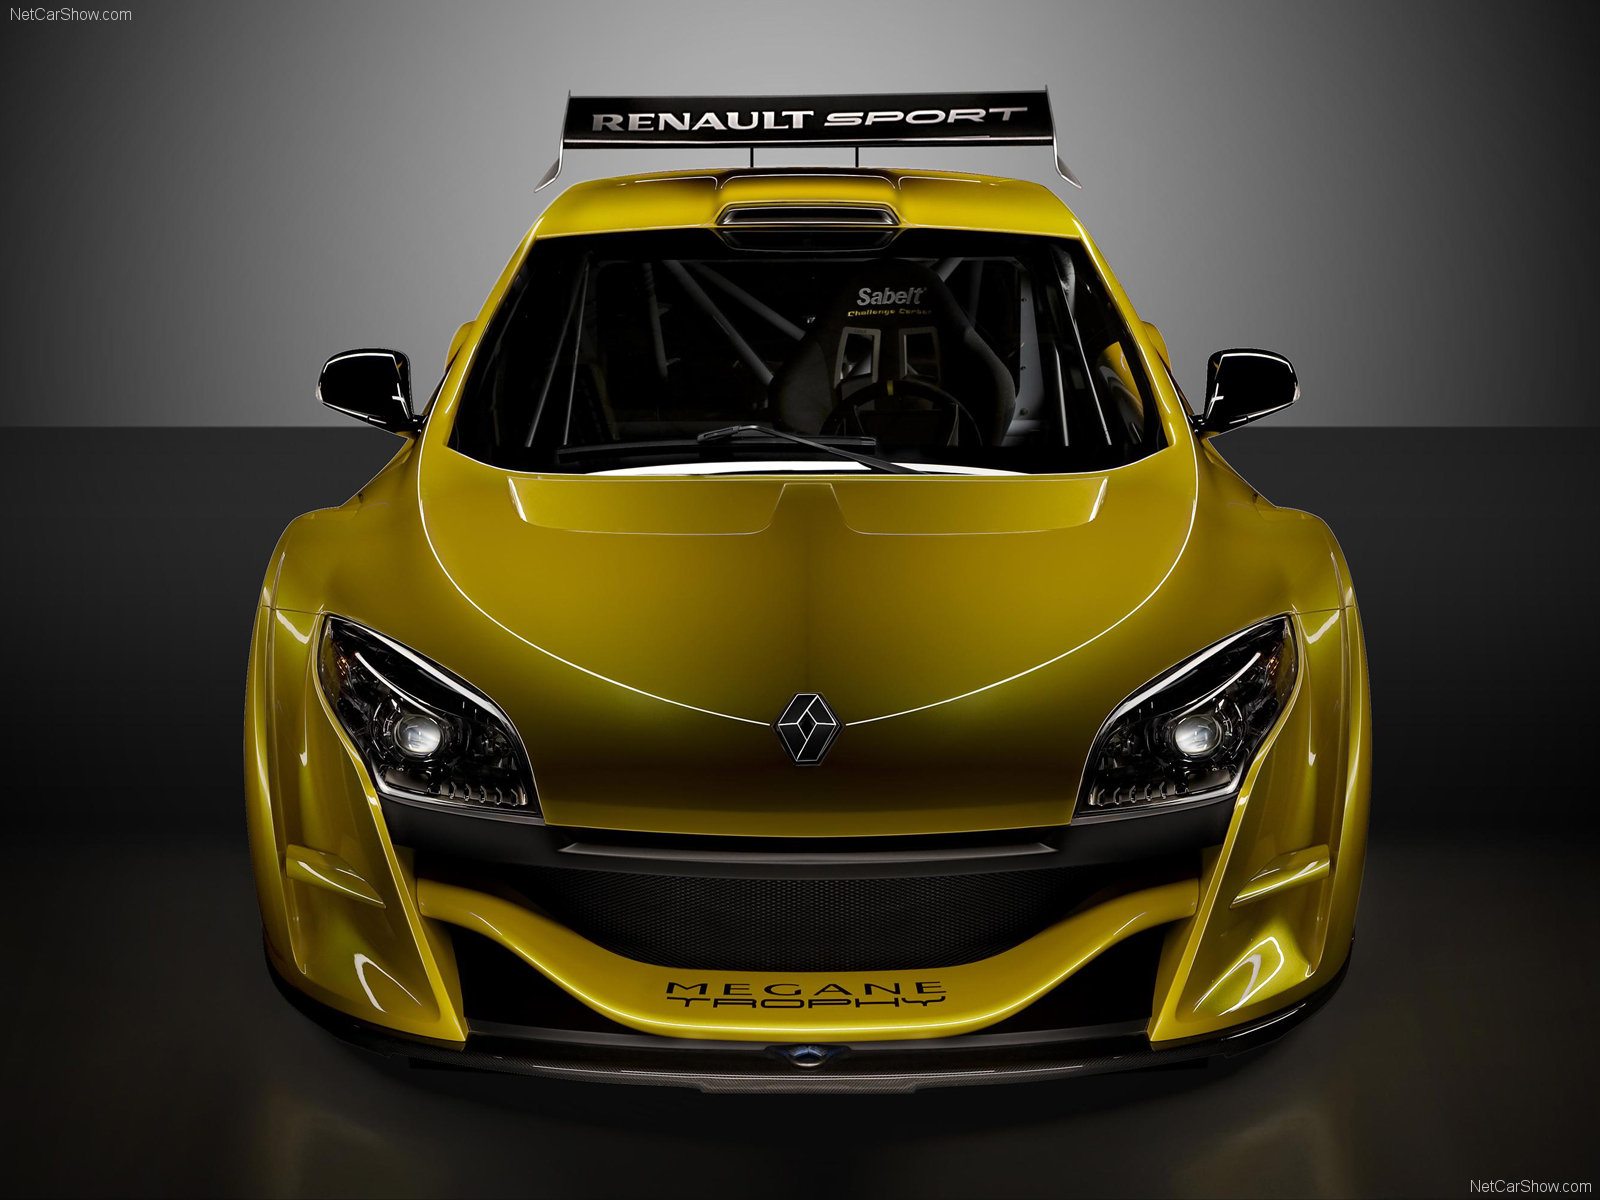 Renault Megane Trophy Wallpapers | Daily inspiration art photos ...